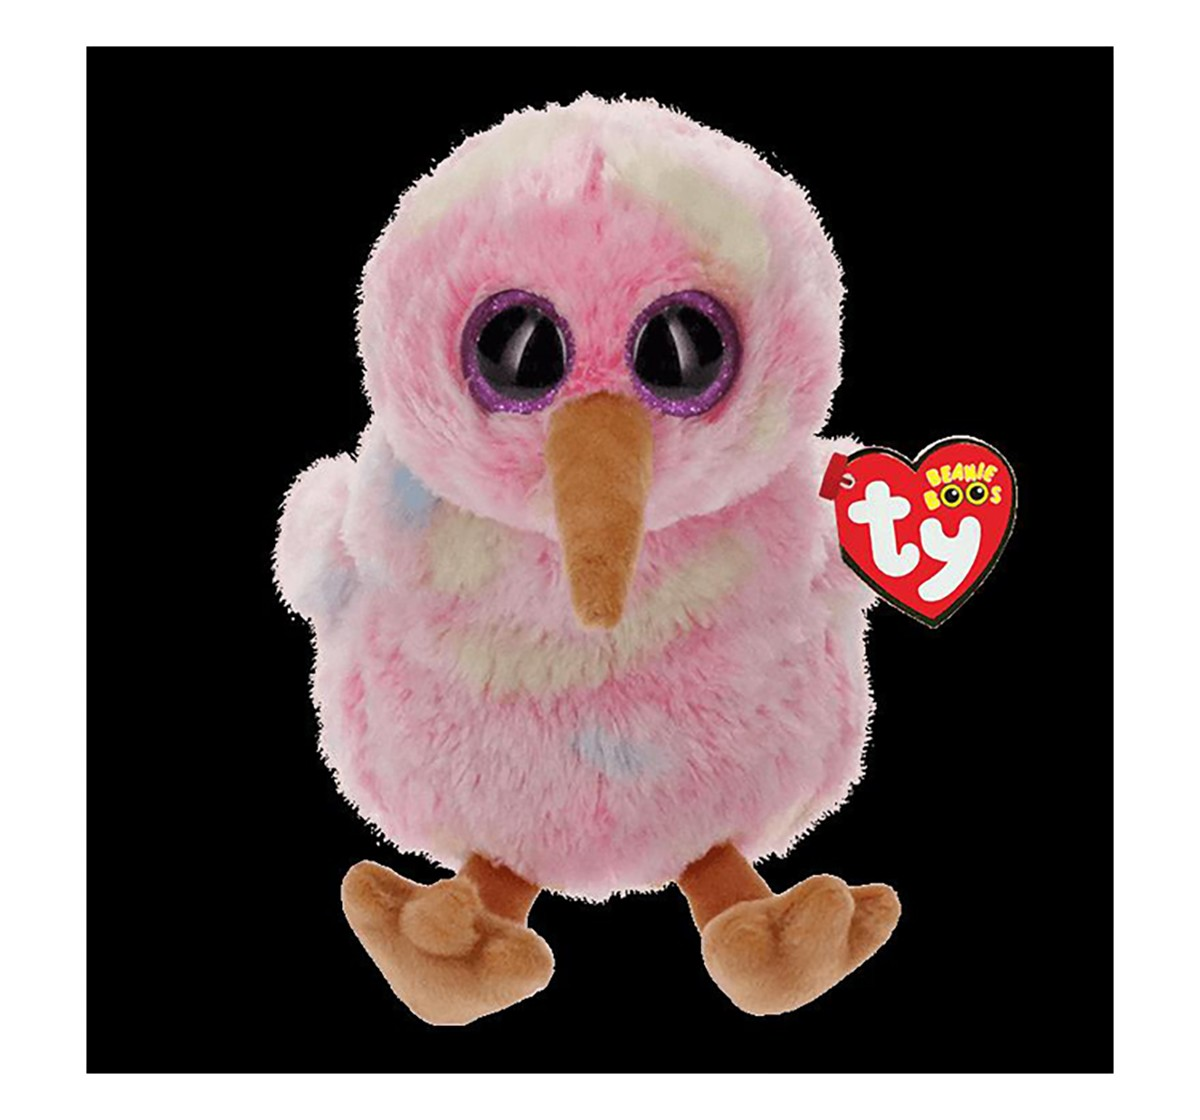 Ty Kiwi - Multicolored Kiwi Regular Beanie Boo Quirky Soft Toys for Kids age 3Y+ - 15 Cm